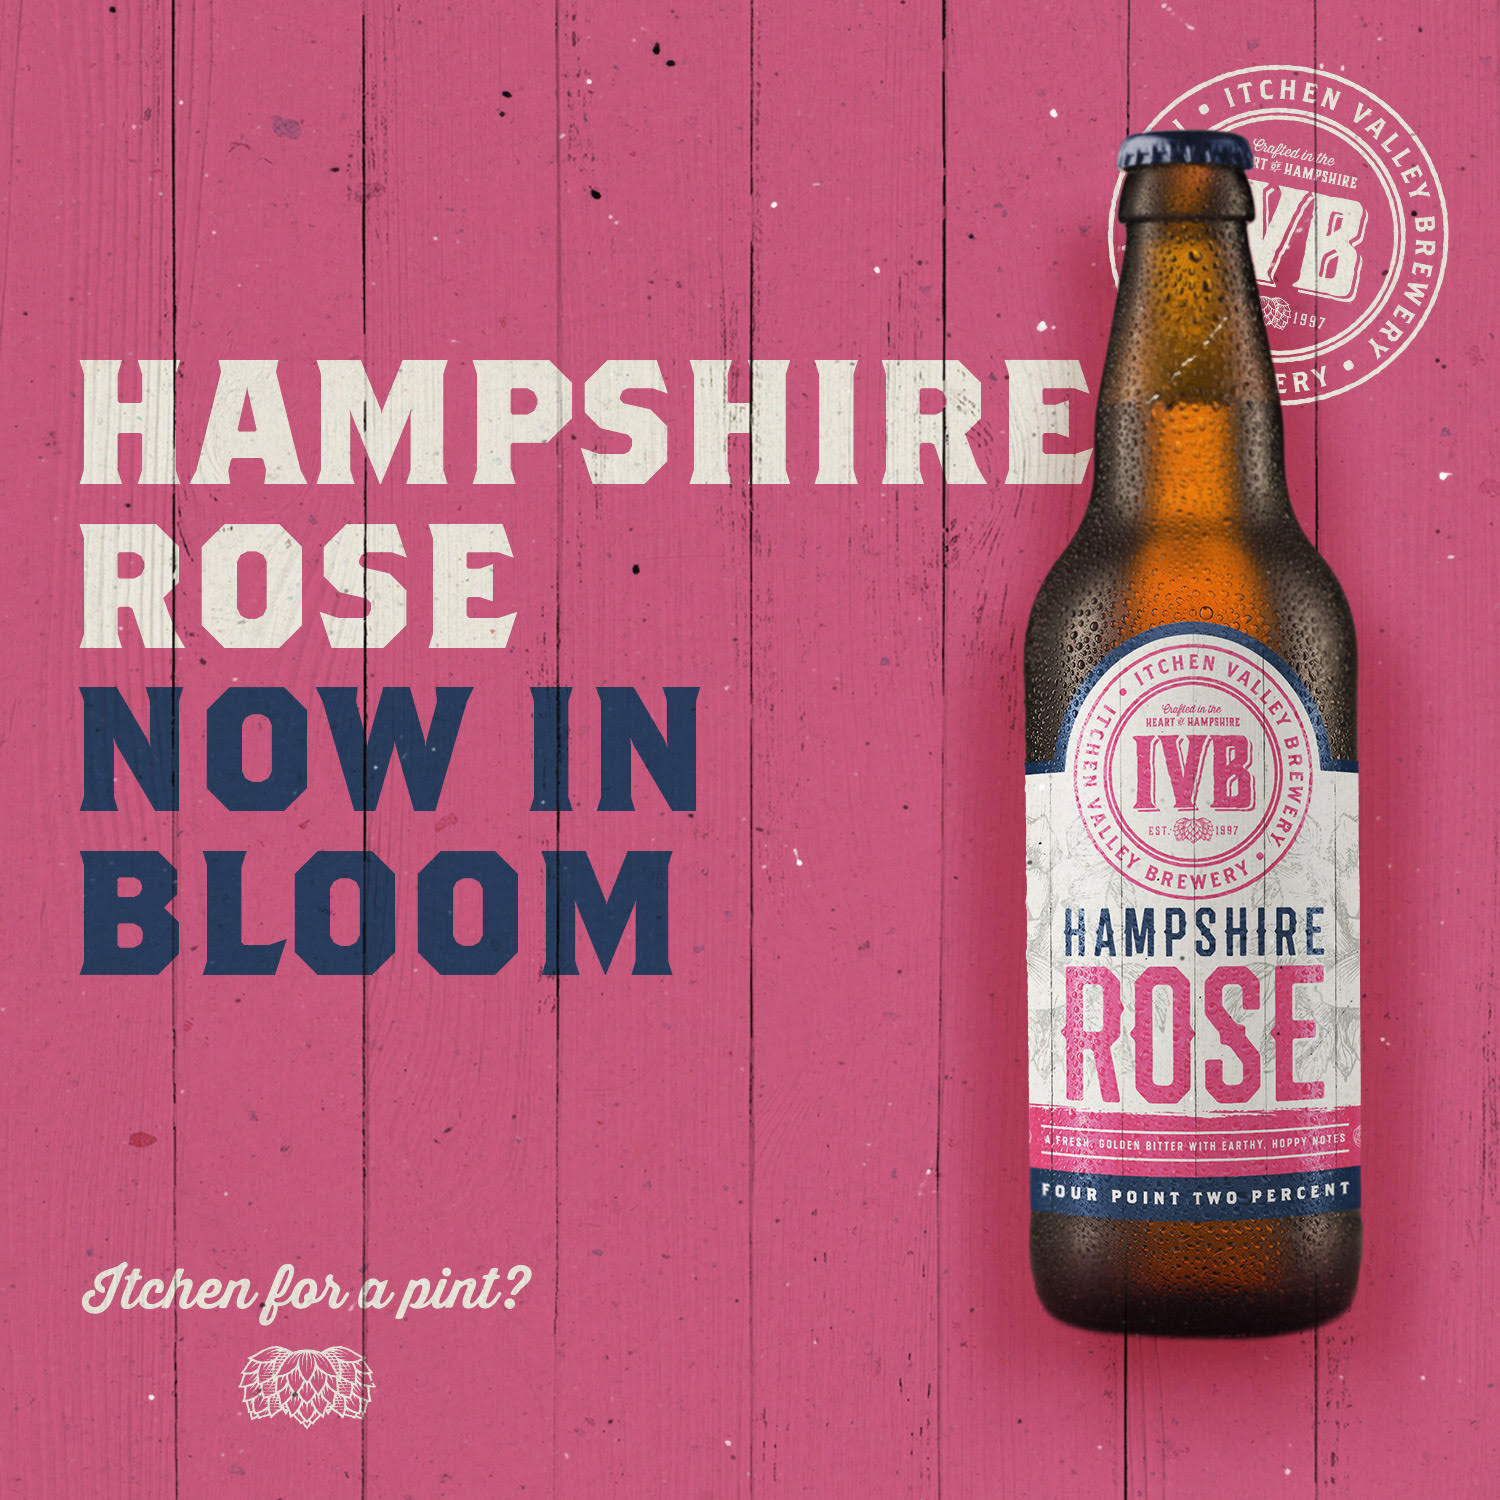 Hampshire Rose promo.jpg